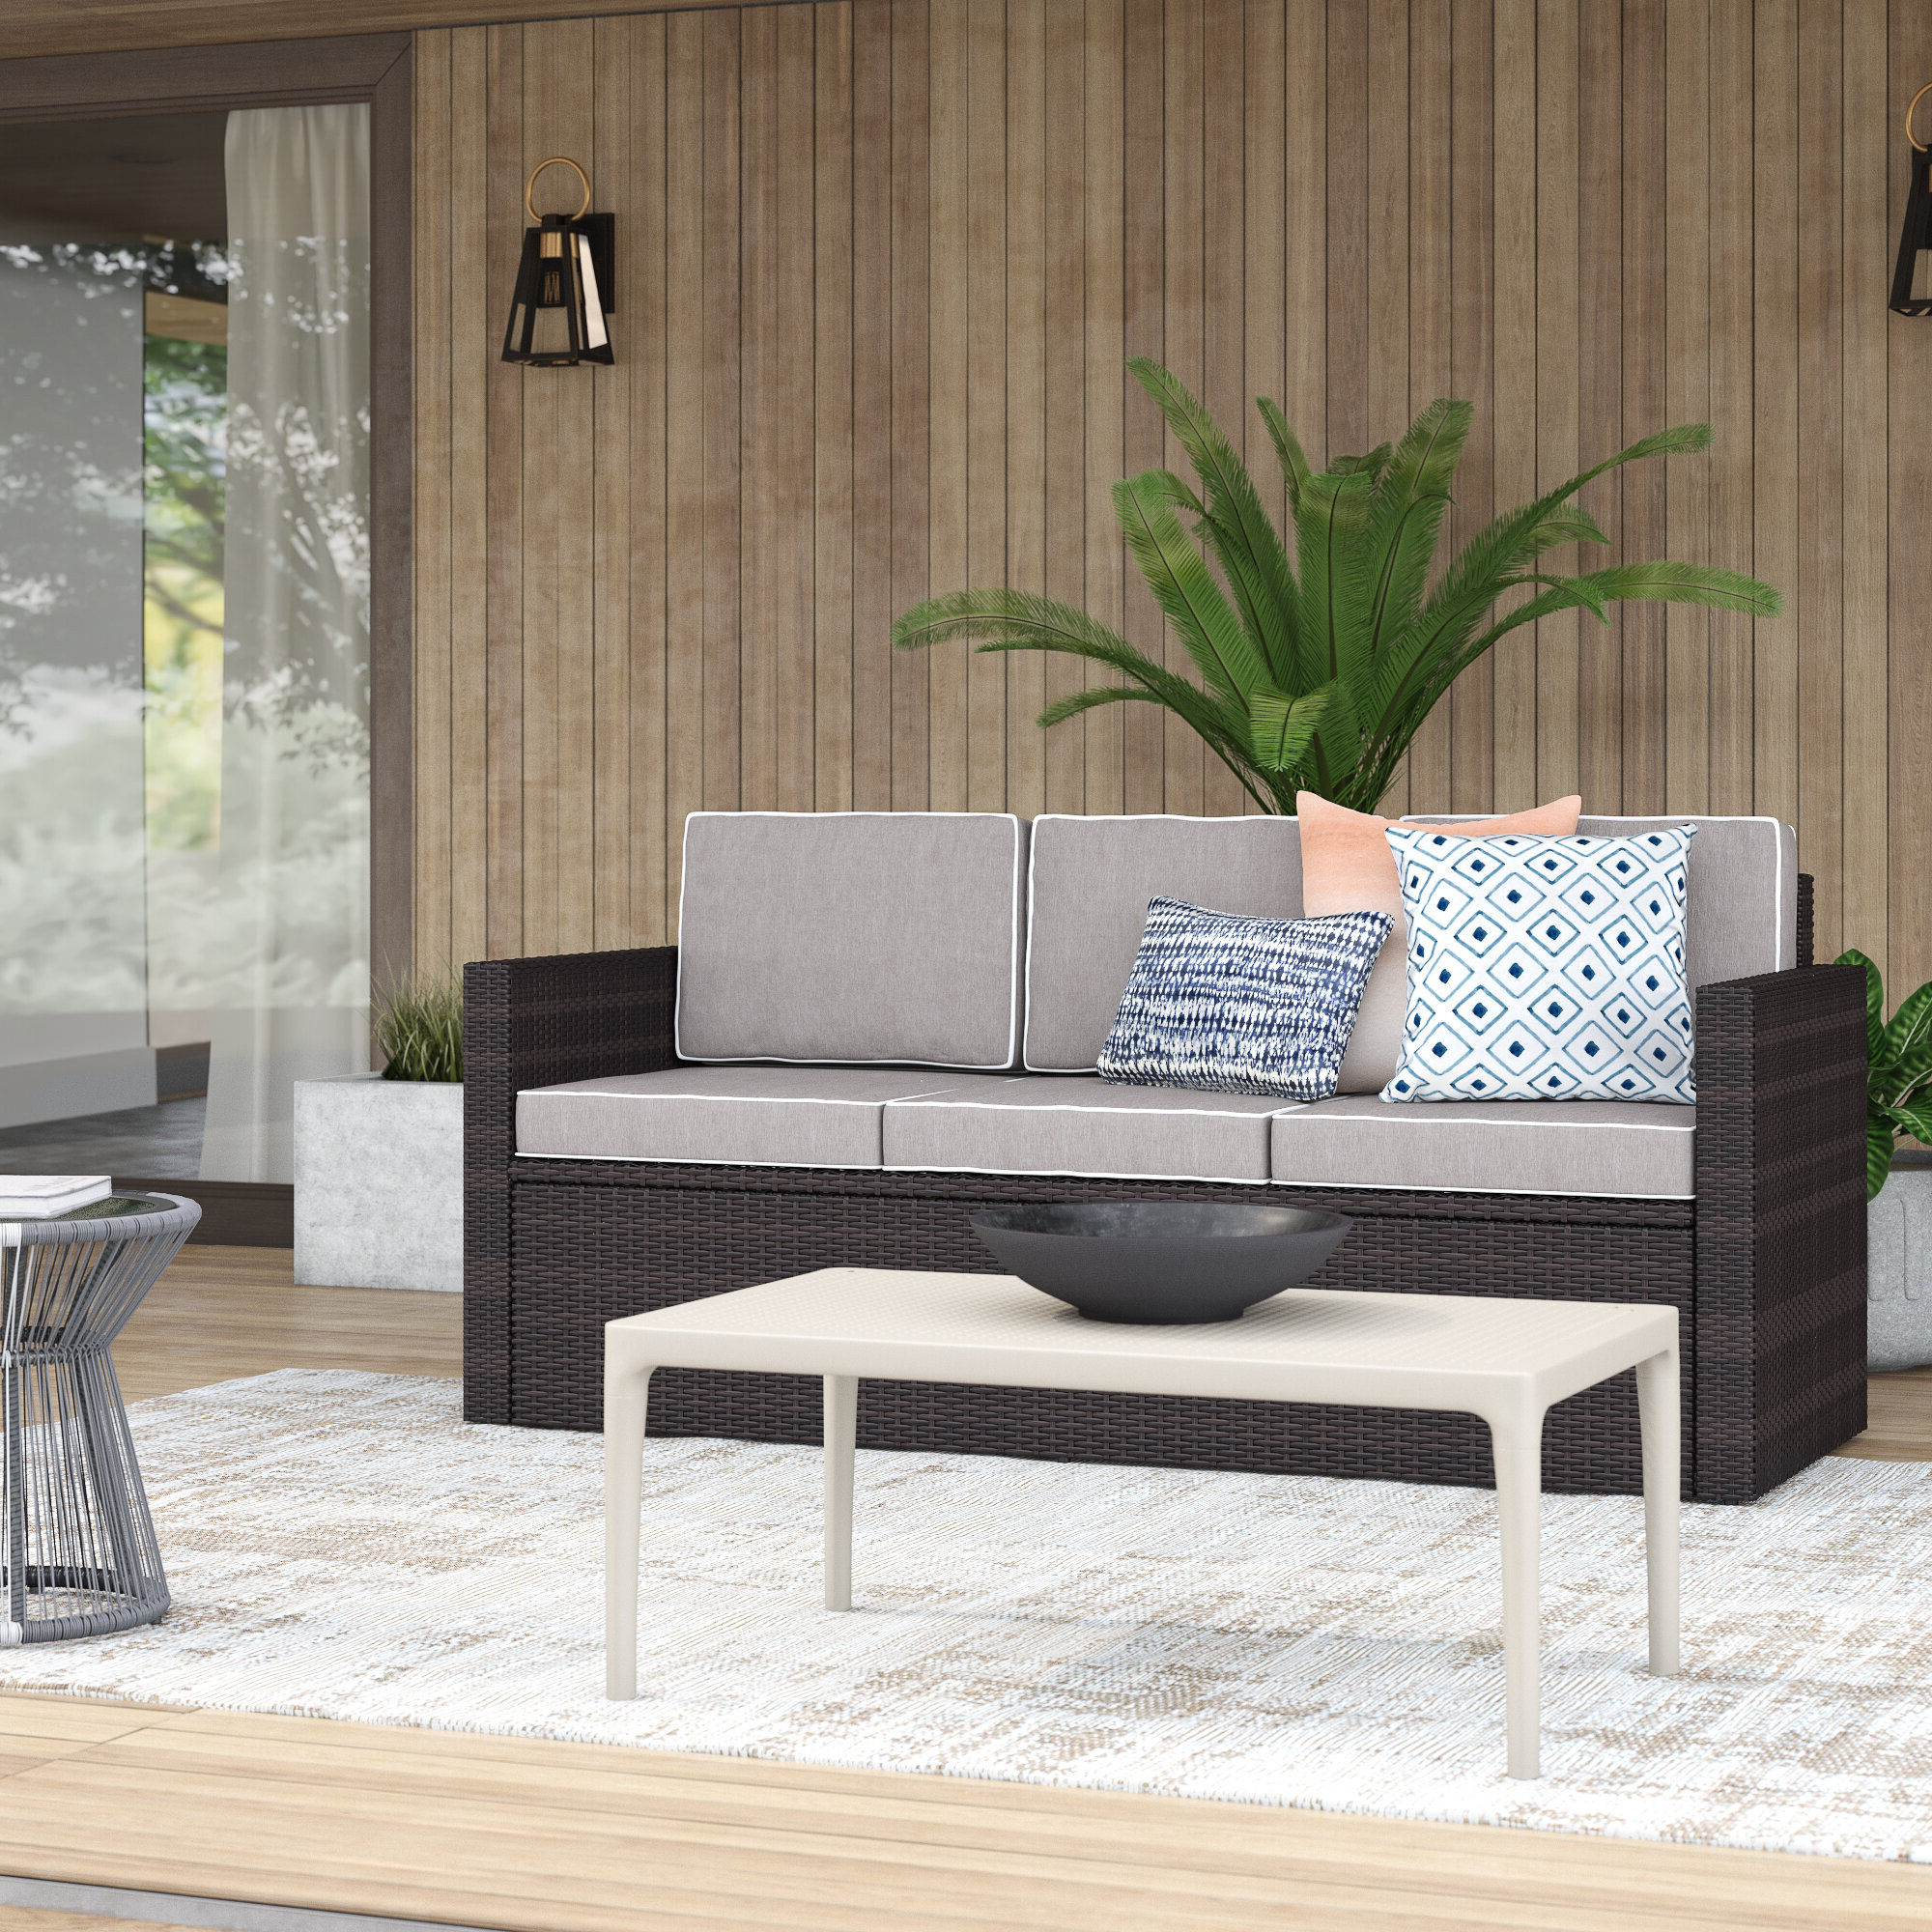 Most Recently Released Loggins Patio Sofas With Cushions Inside Belton Patio Sofa With Cushions (View 12 of 20)